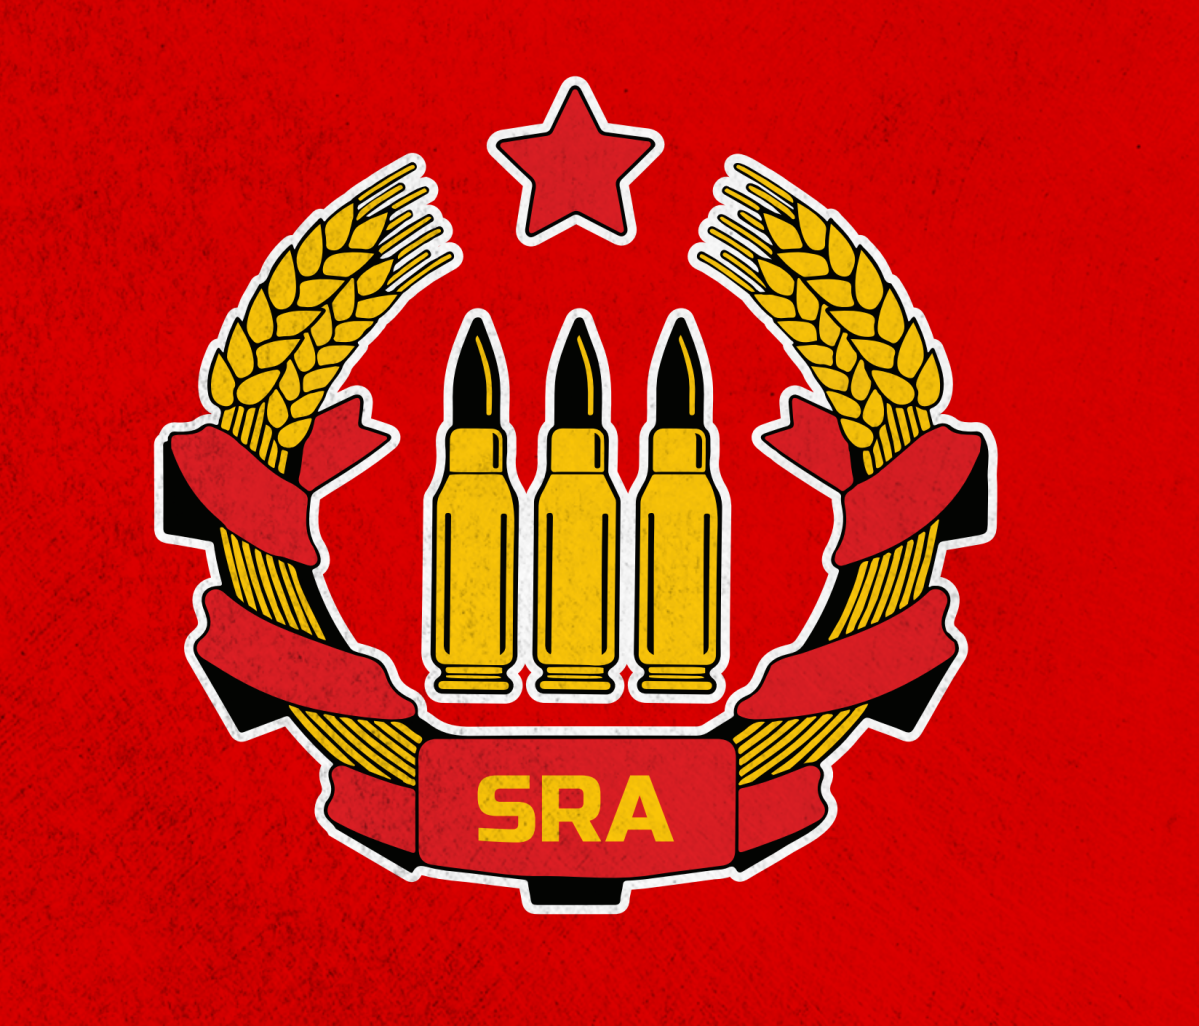 Socialist Rifle Association